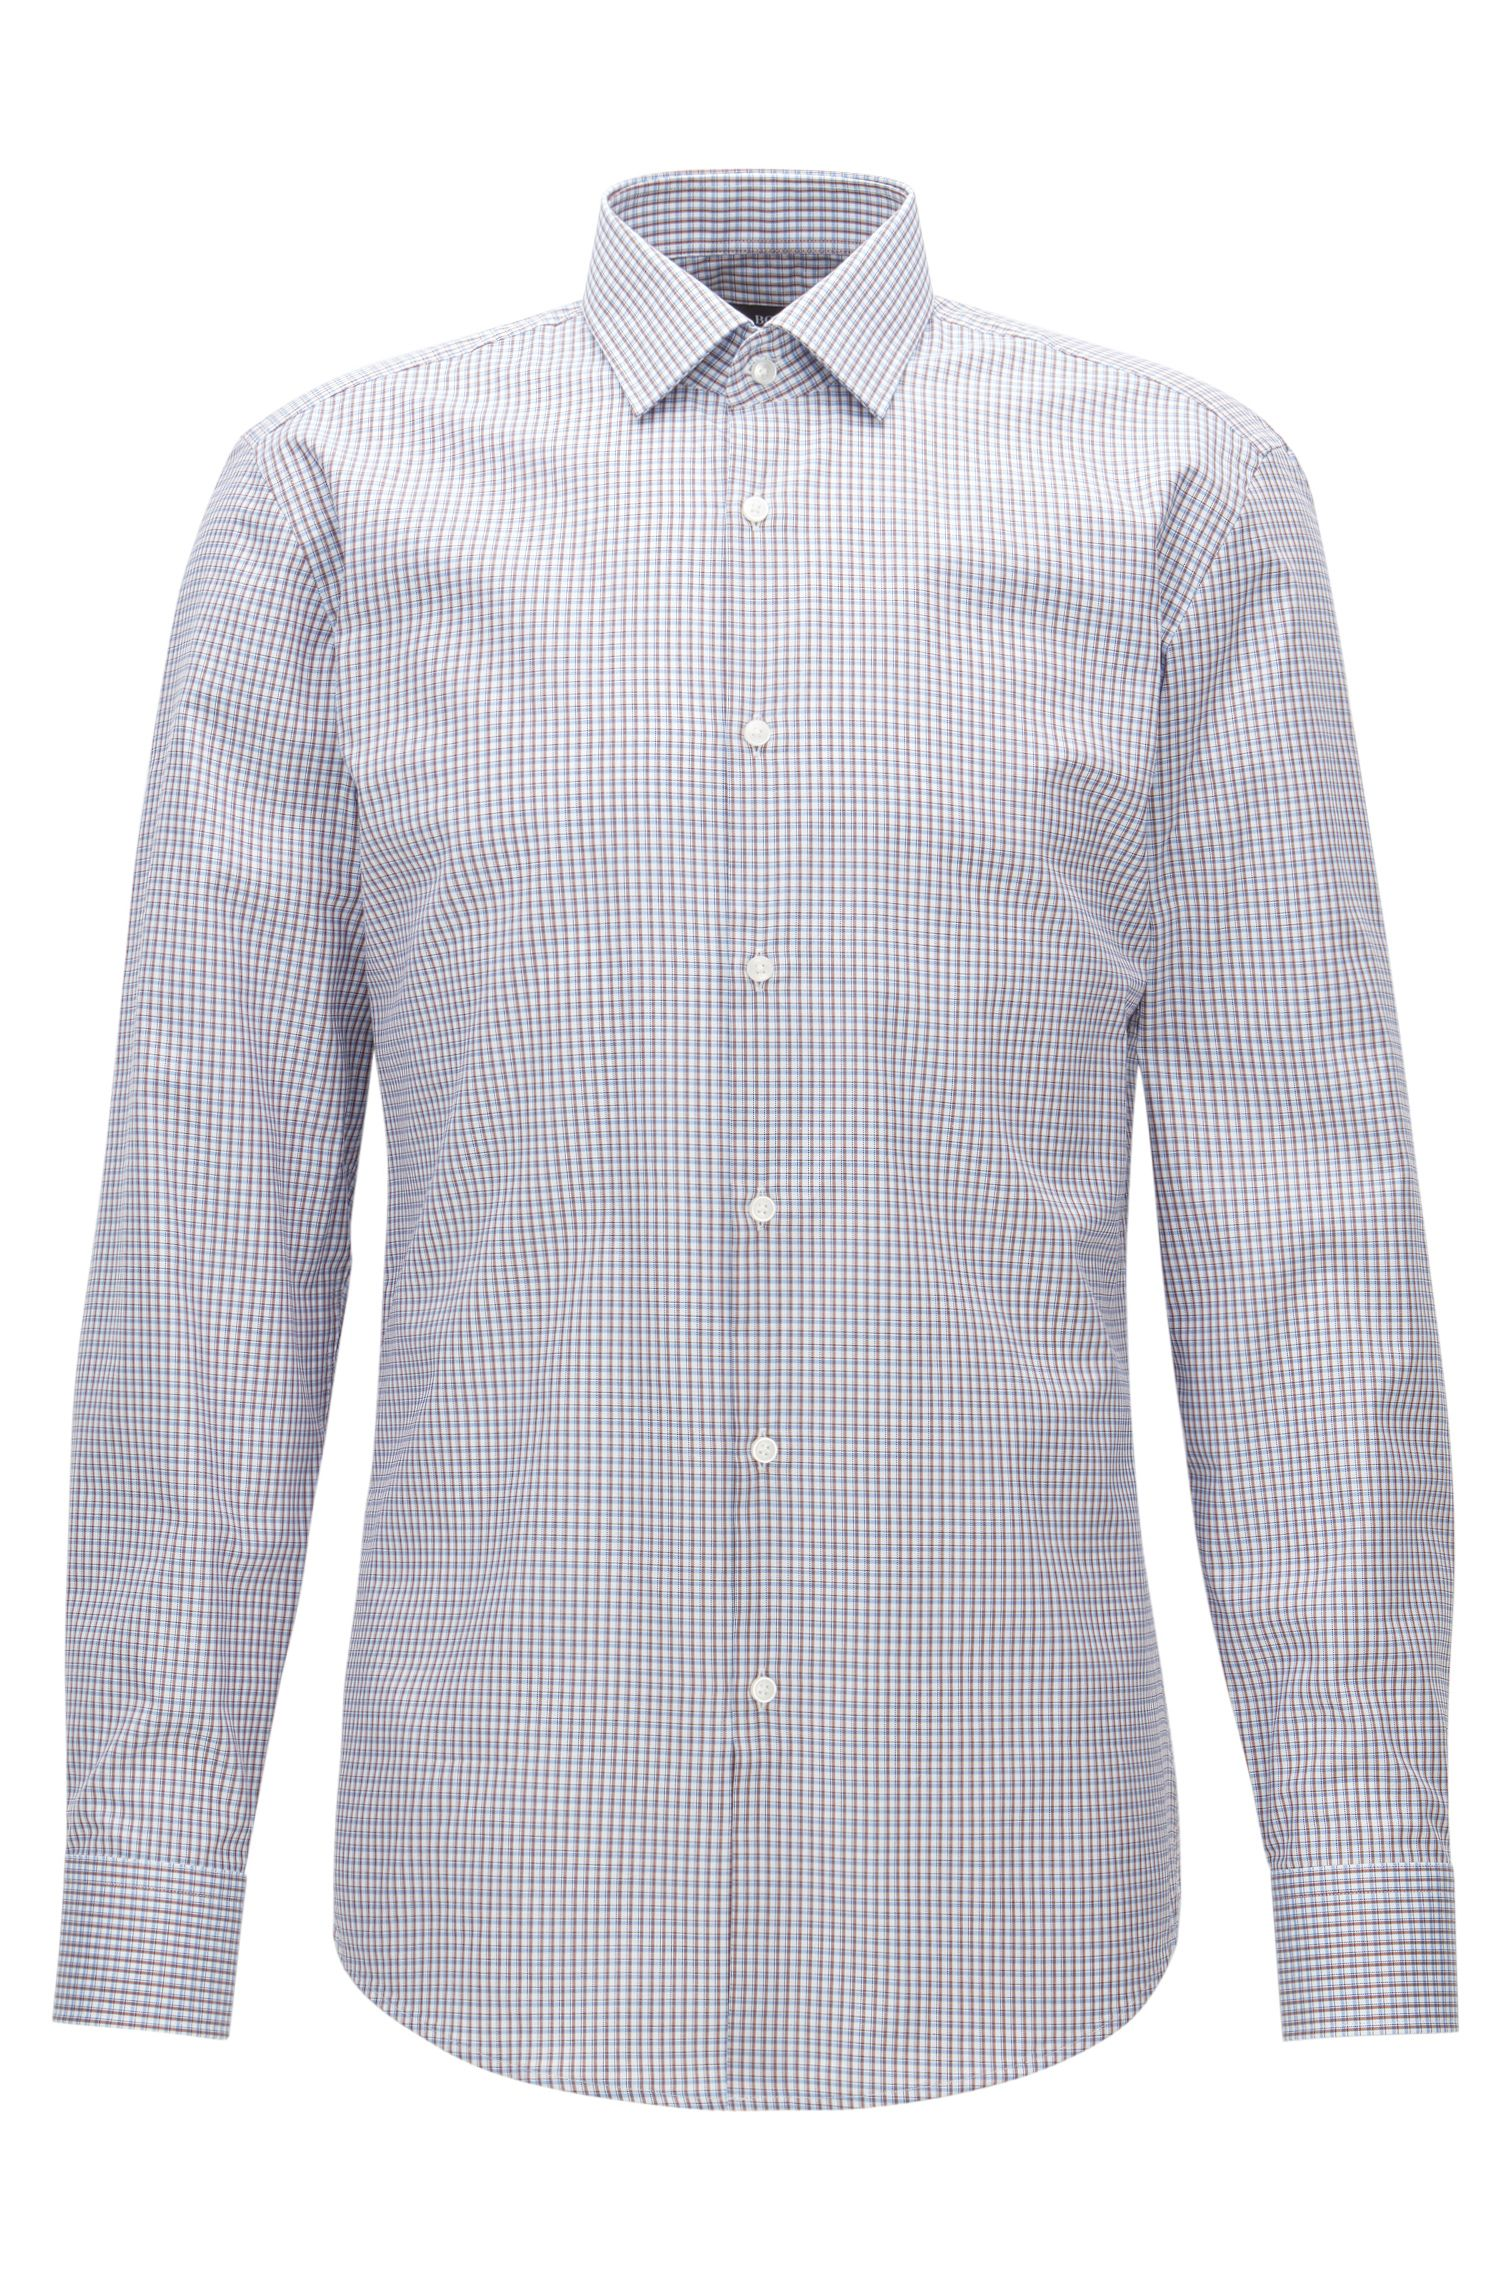 Plaid Cotton Dress Shirt, Slim Fit | Jenno